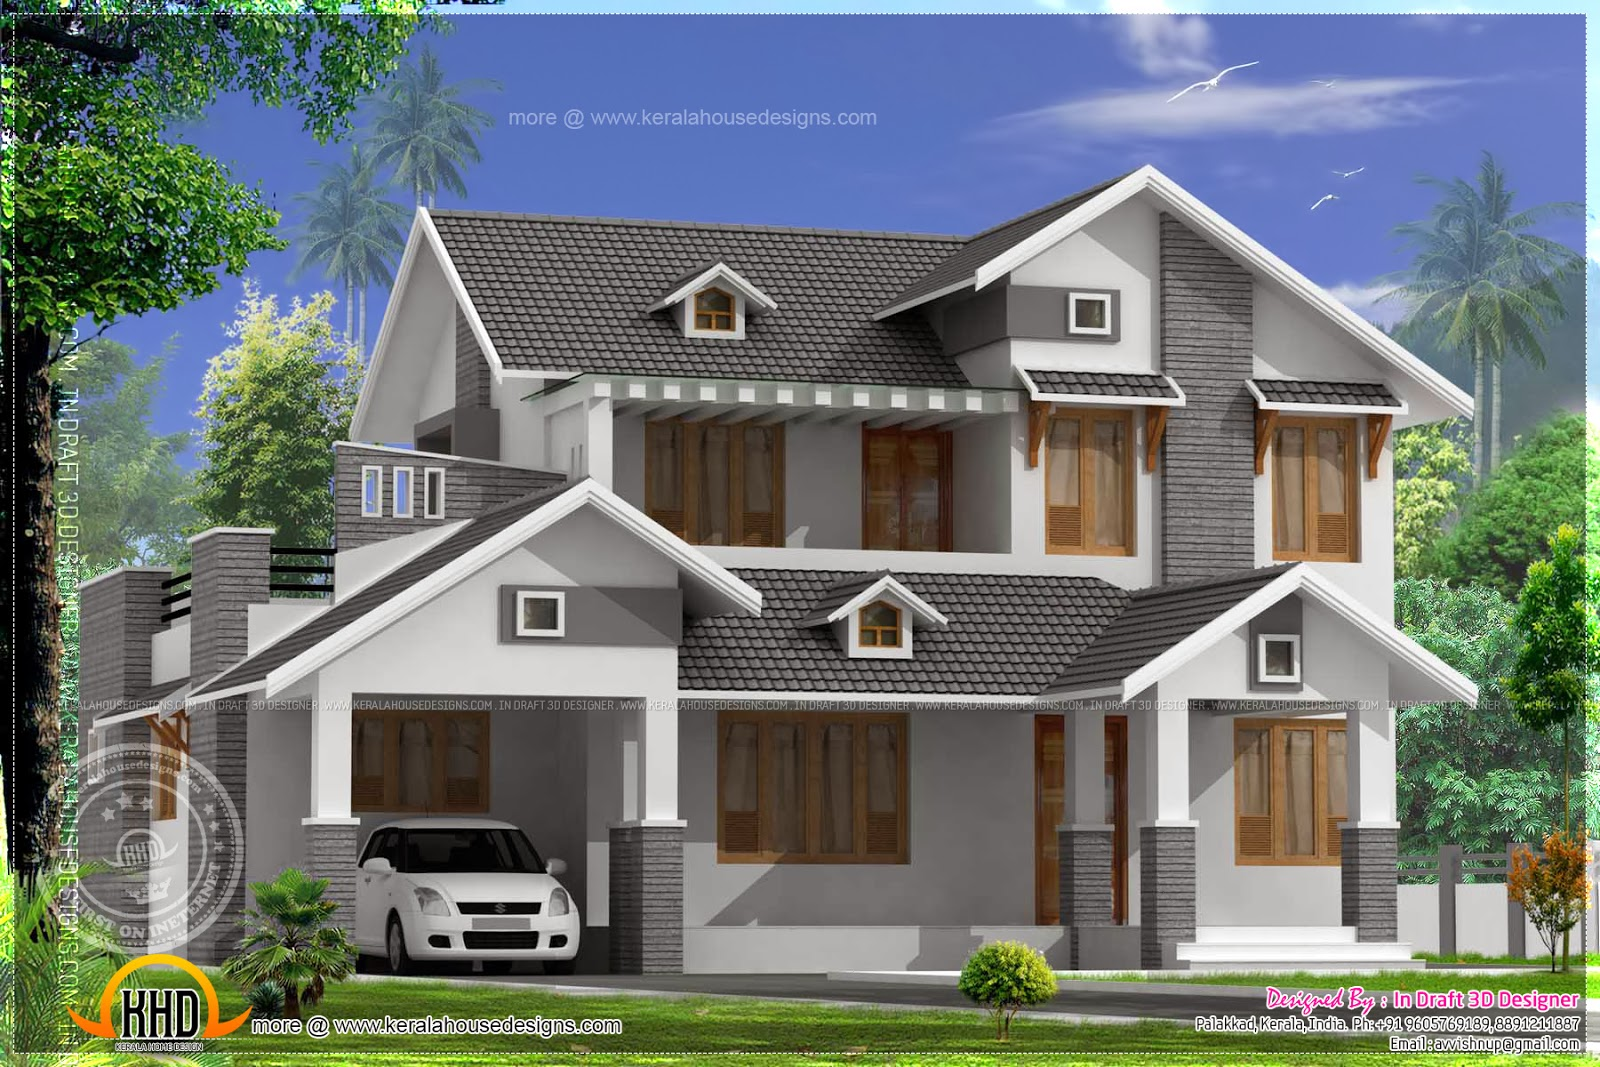 Pitched Roof House Designs Modern House